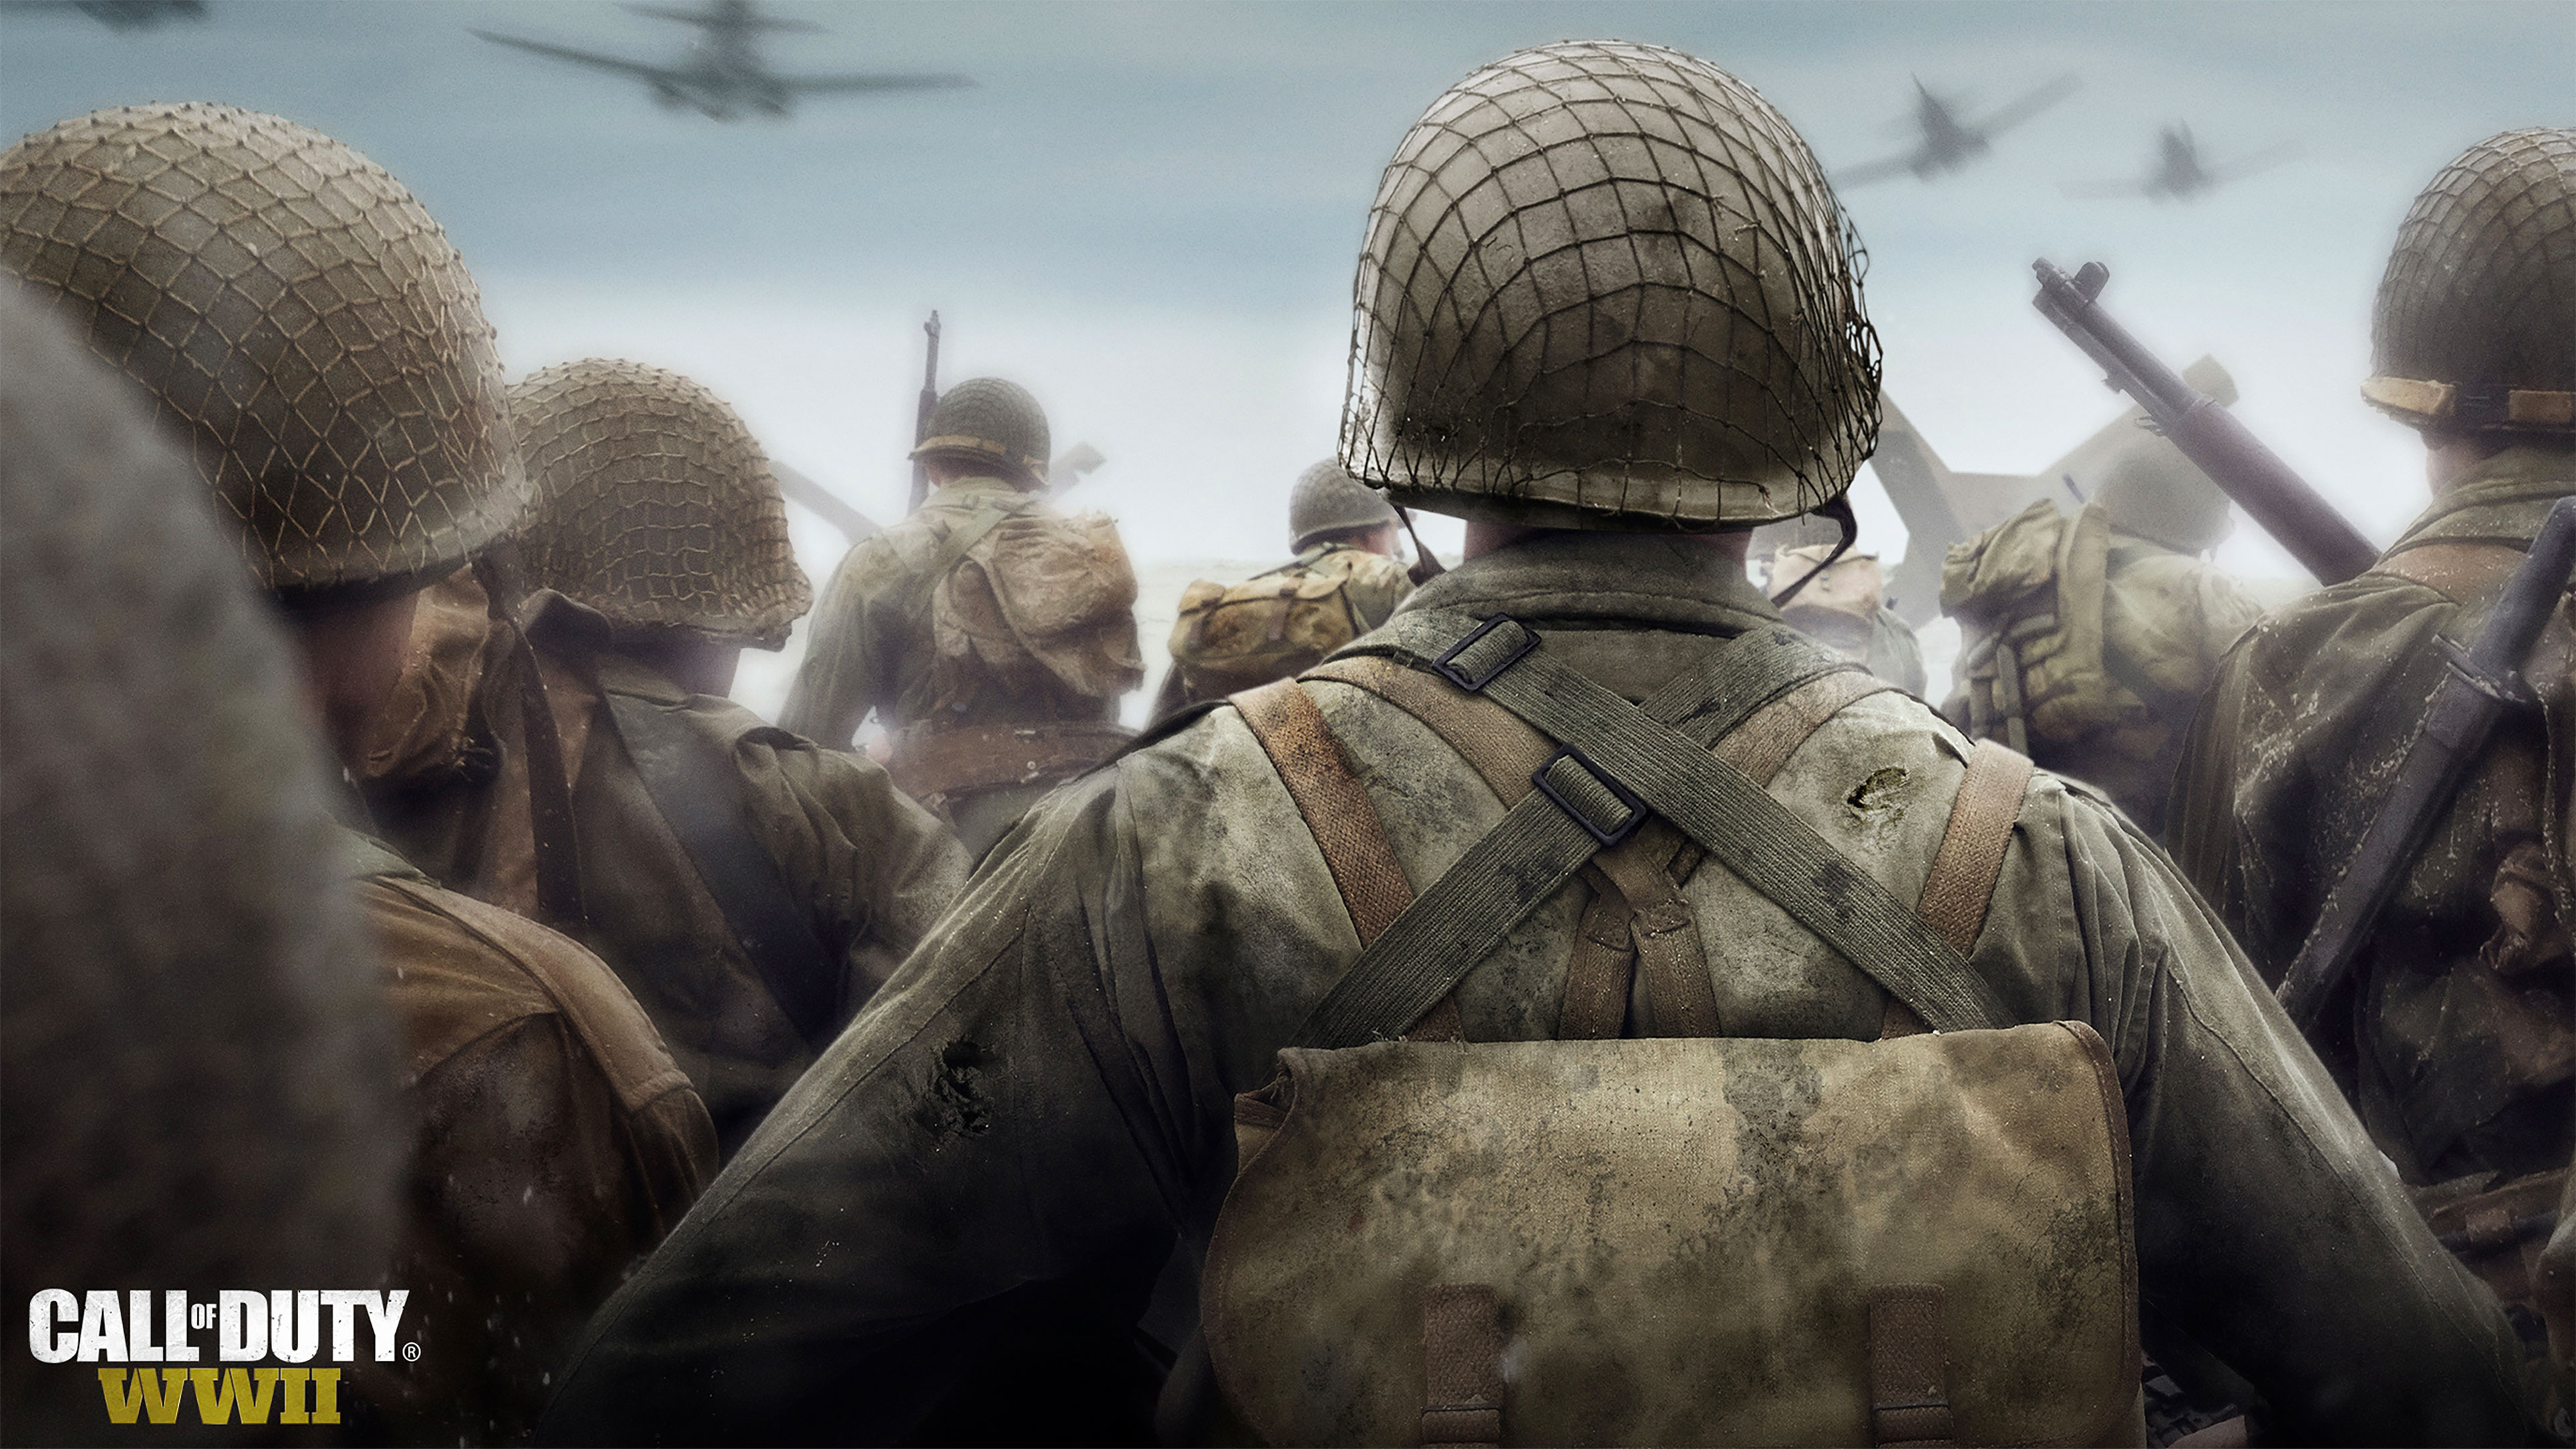 CALL OF DUTY WWII 4K Wallpaper